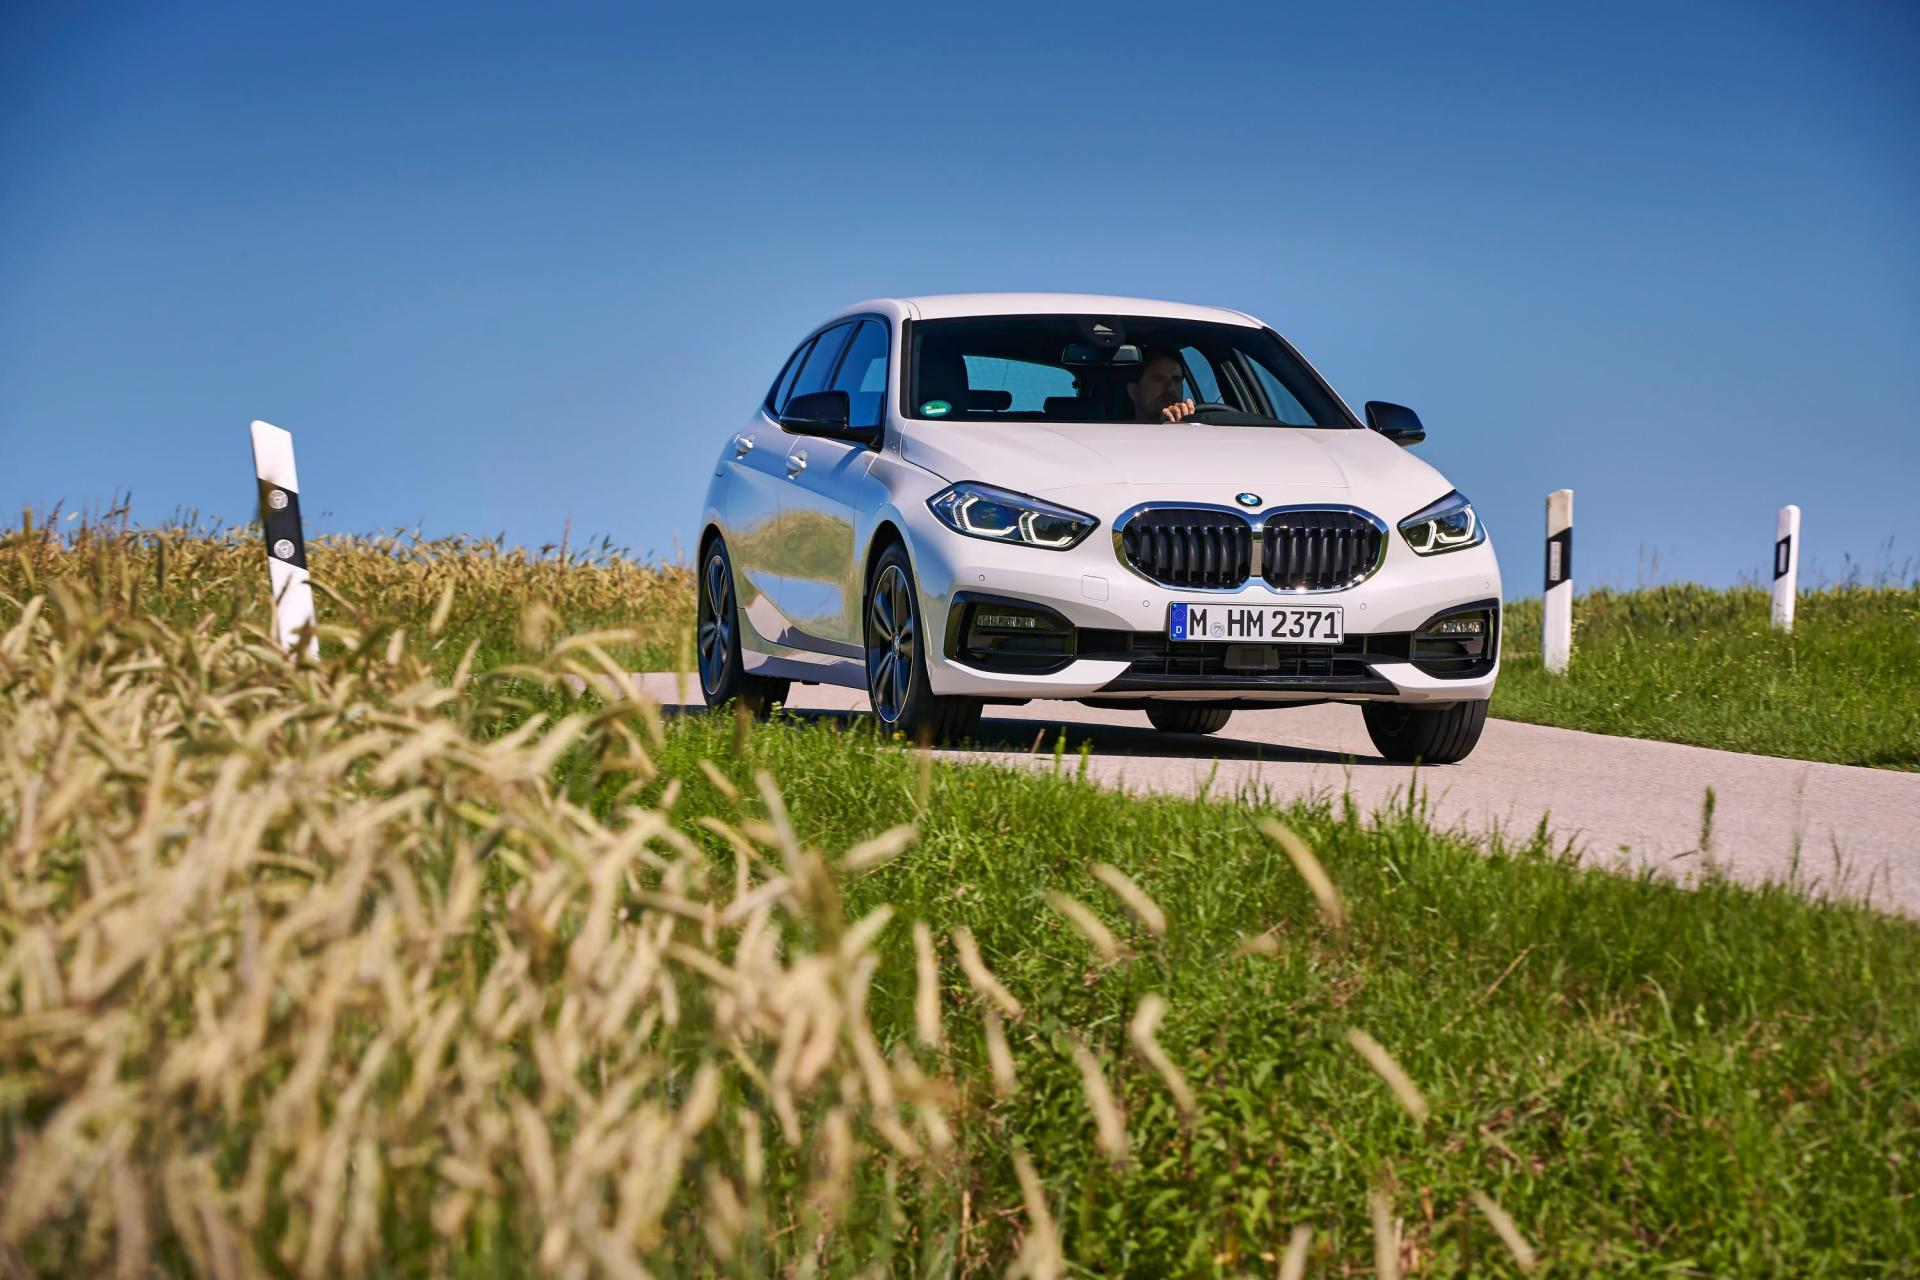 BMW's 1 Series has made the switch to front-wheel-drive.